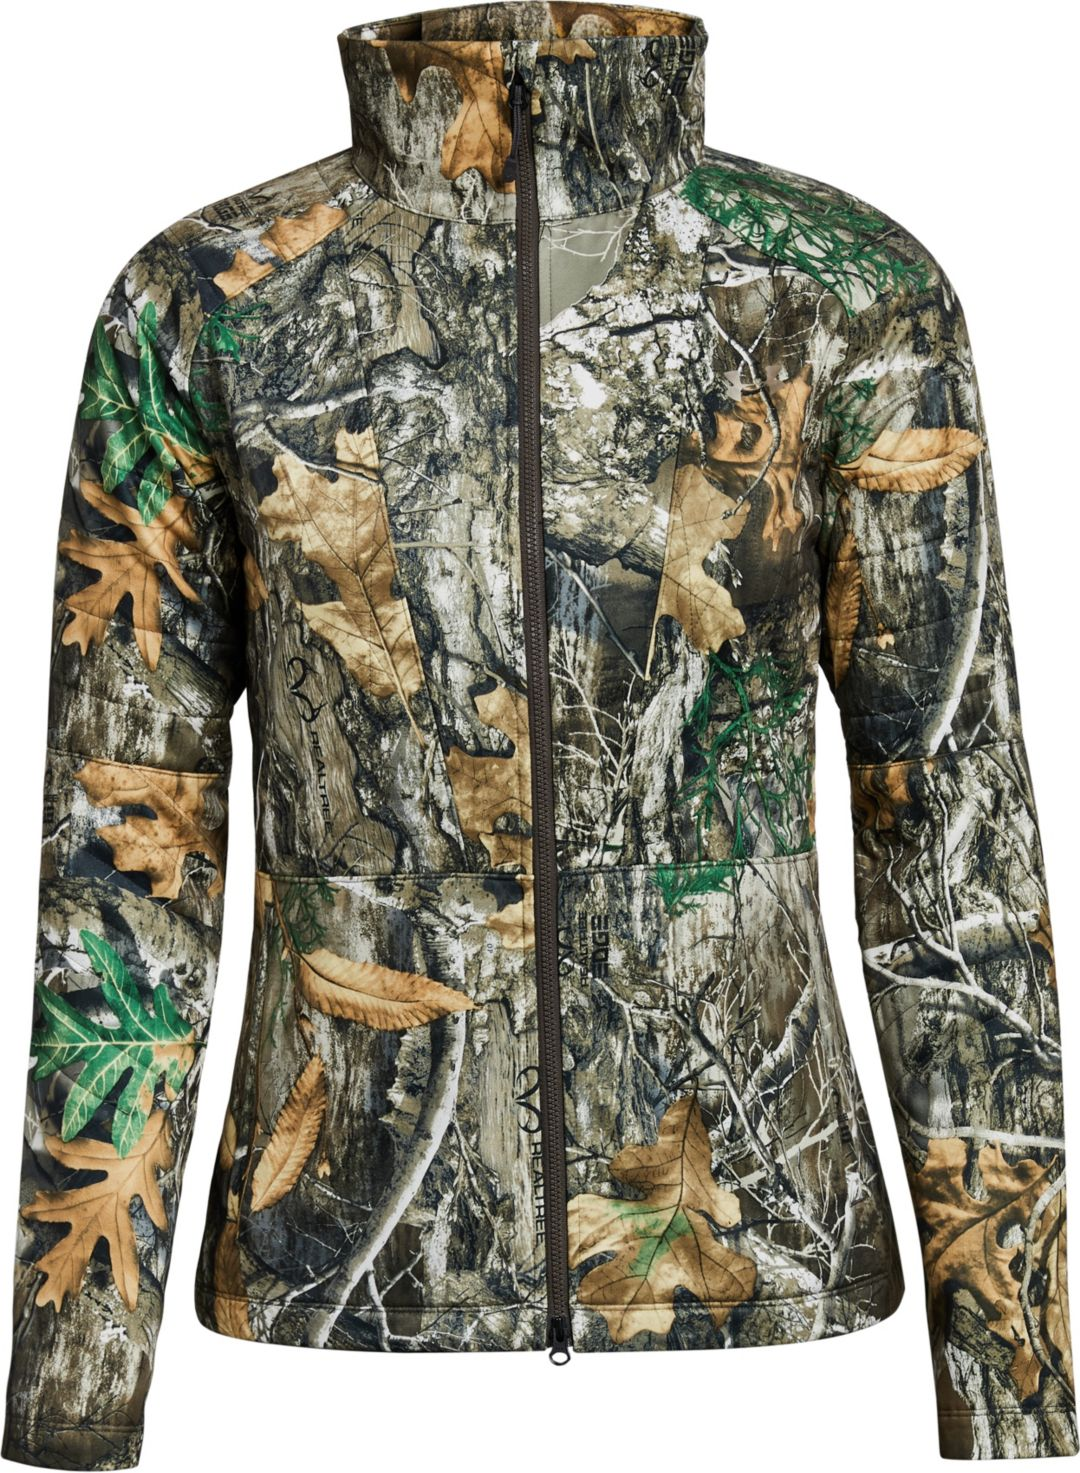 cebfcaaf339c2 Under Armour Women's Brow Tine Hunting Jacket. noImageFound. Previous